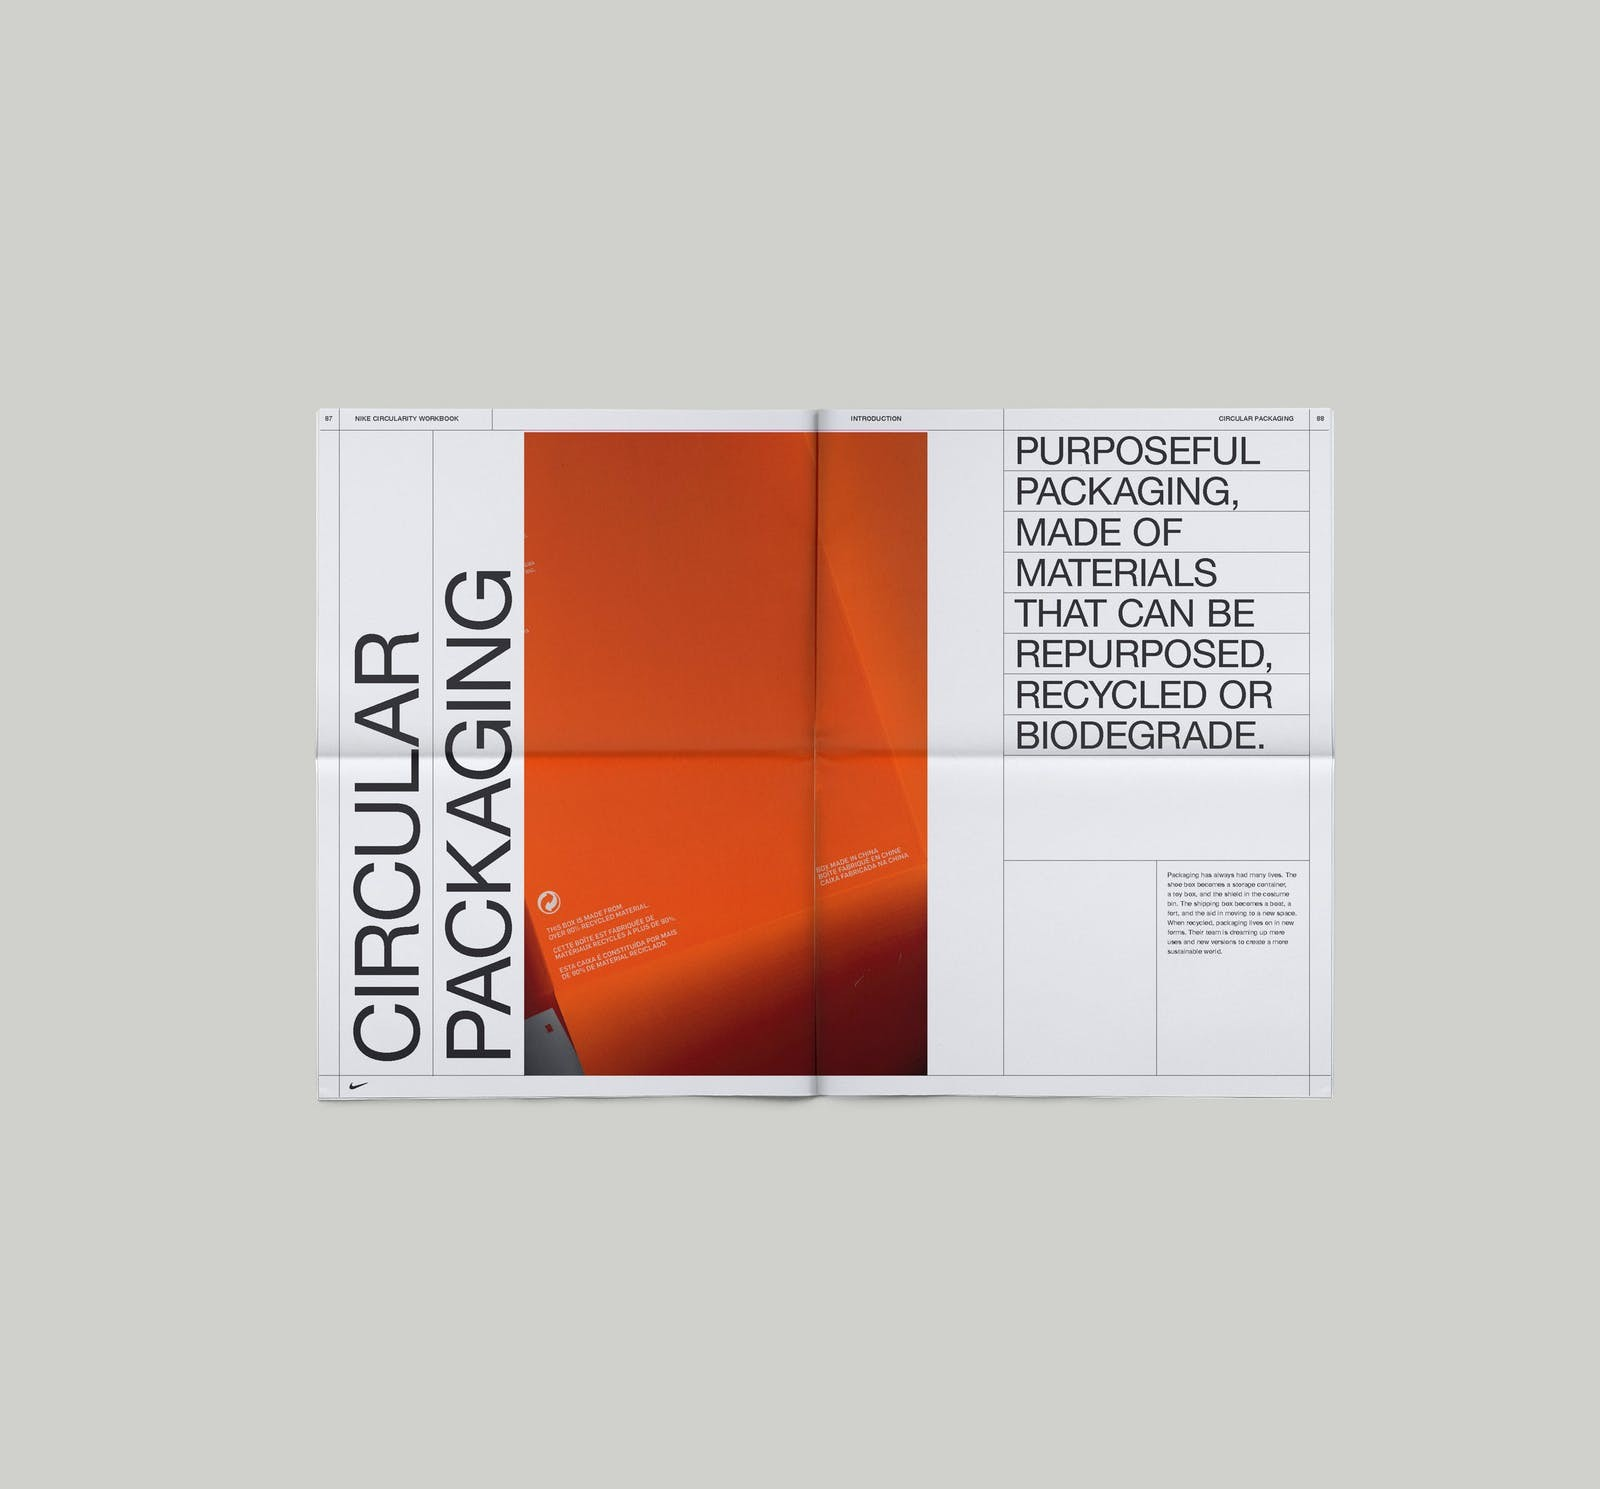 ce4616d1-89e6-483e-a739-dd51298f9ac2_this_nikecircularity_images_booklets_packaging.jpg?auto=compress-format-rect=0-0-2500-2...